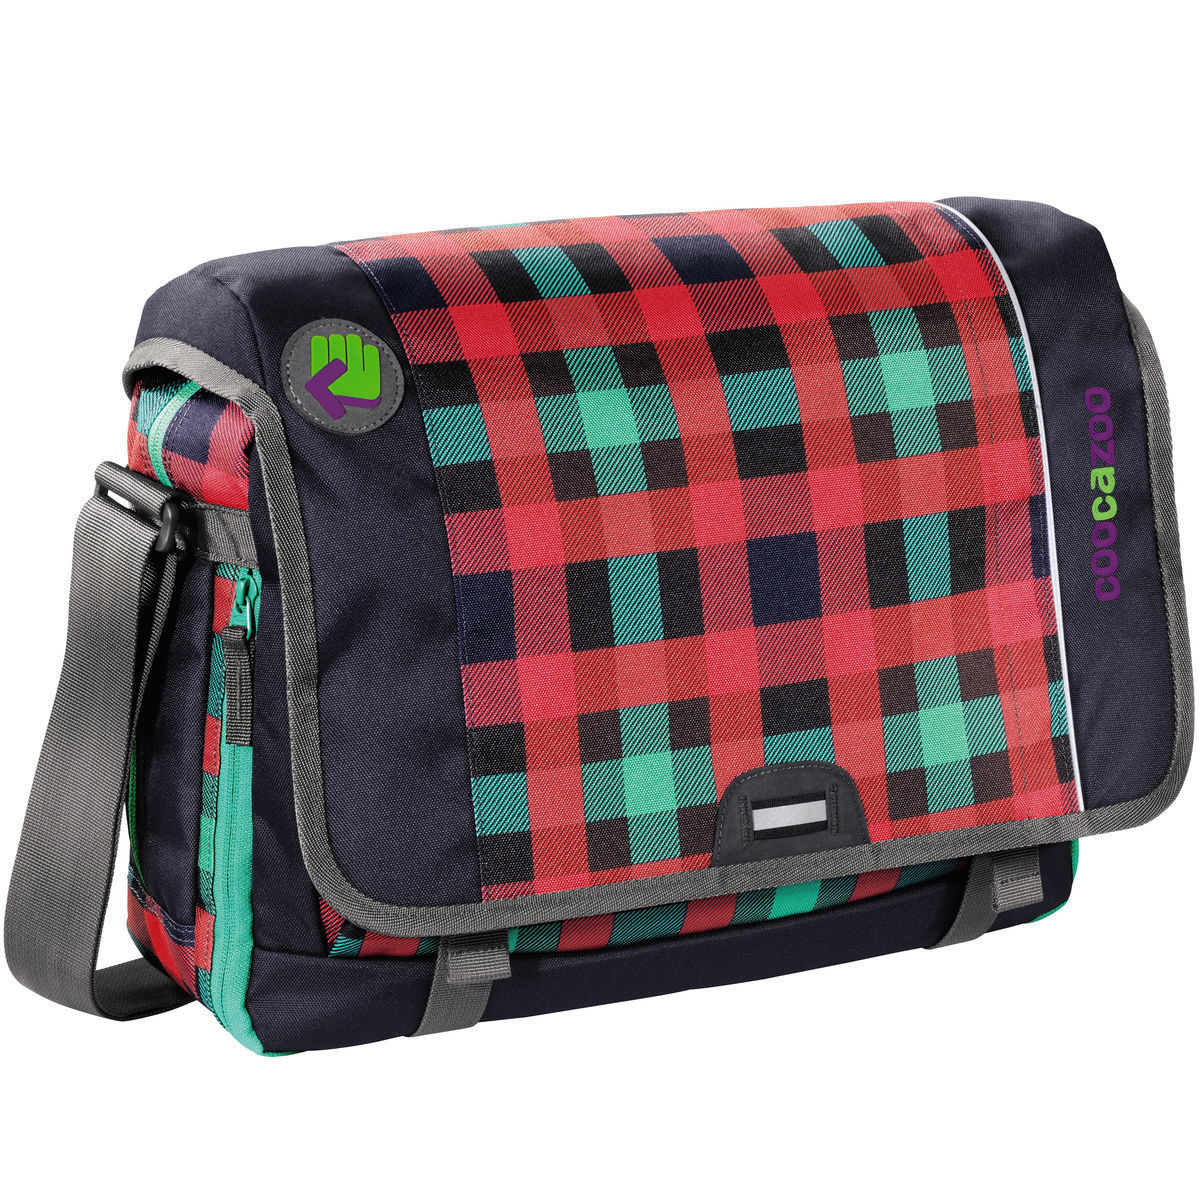 coocazoo City Stuff HangDang Umhängetasche 44 cm Laptopfach, Checky Mint